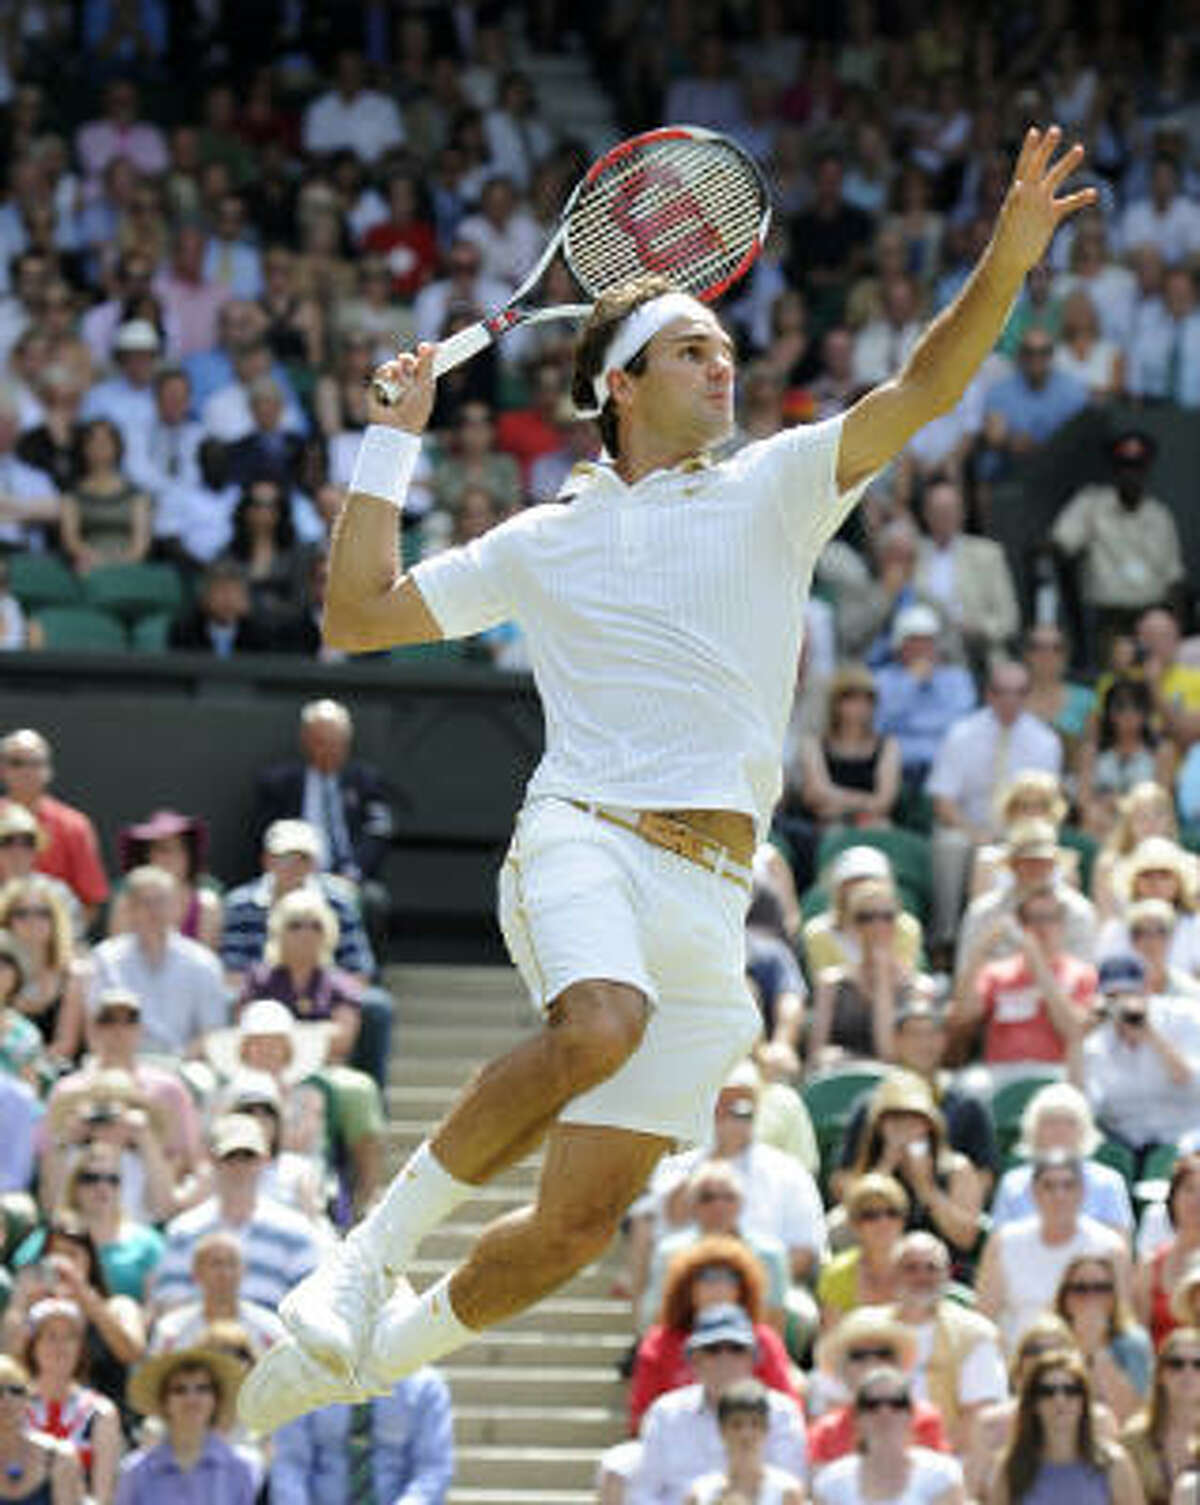 Switzerland's Roger Federer won 72 of 83 points on his serve, did not face a single break point and finished with 49 winners and only 15 unforced errors against Tommy Haas.